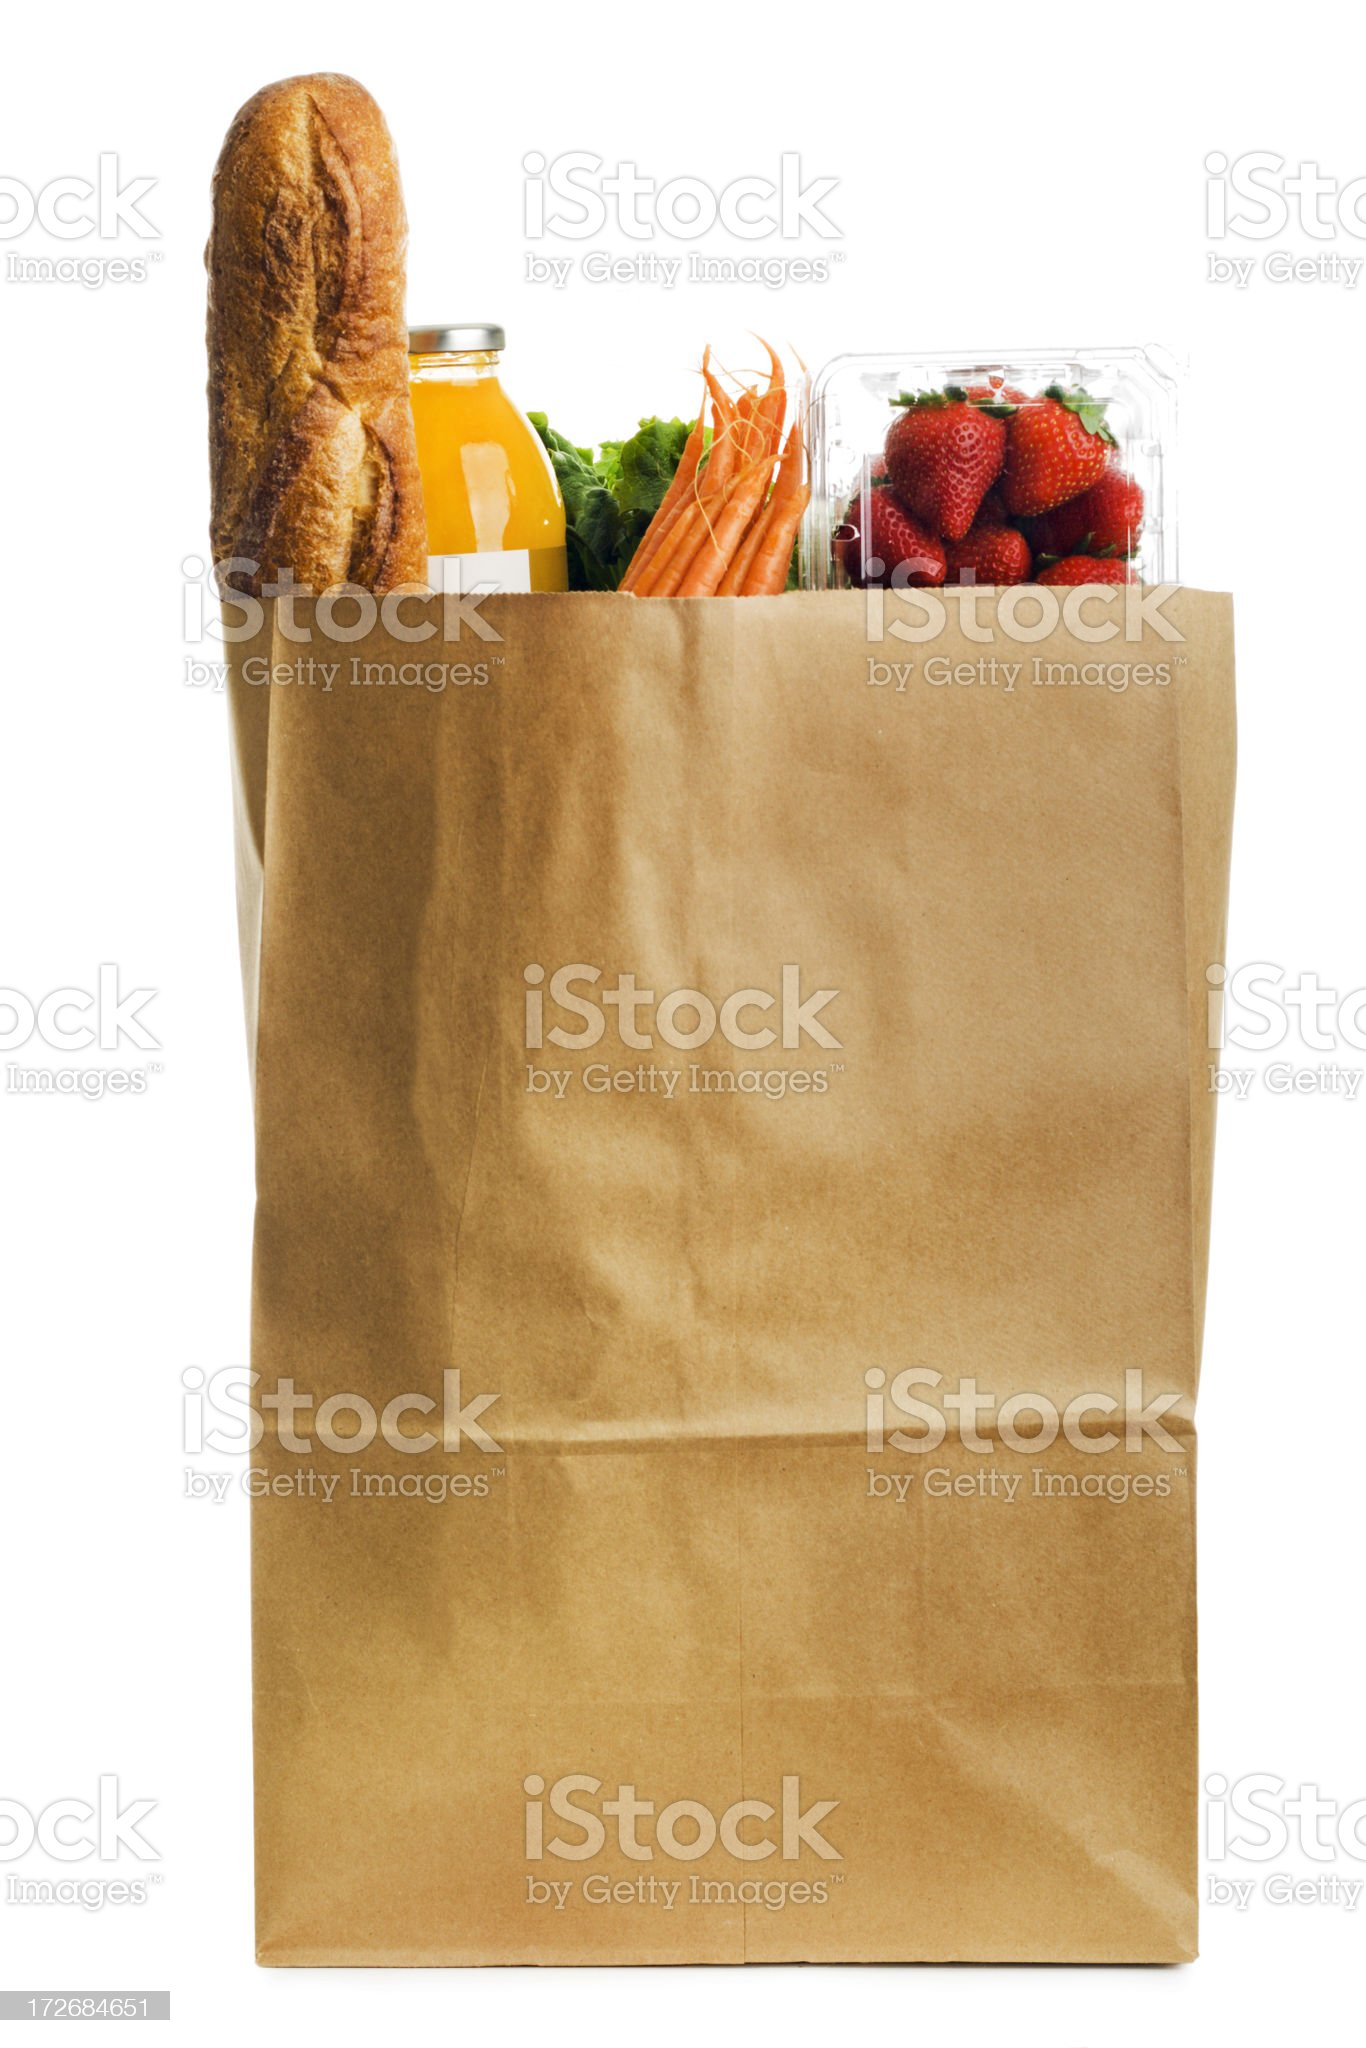 Healthy, Fresh Food in Paper Grocery Bag on White Background royalty-free stock photo